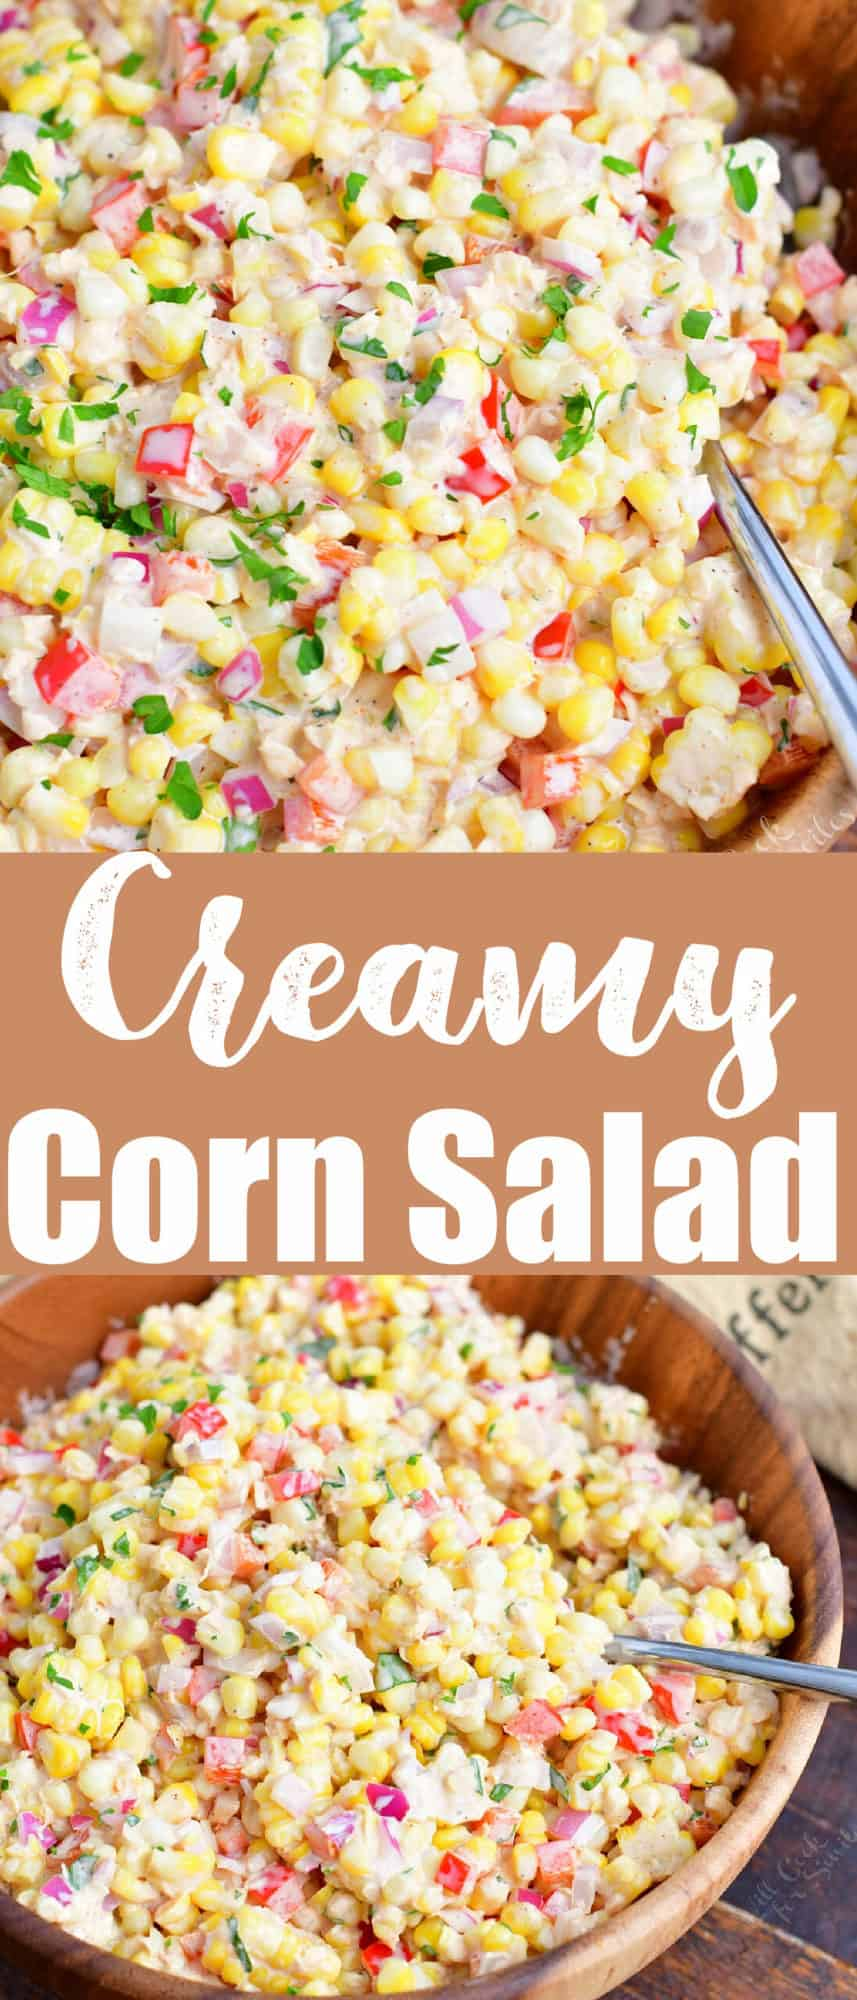 title collage of two images of close up corn salad and salad in a bowl and recipe name